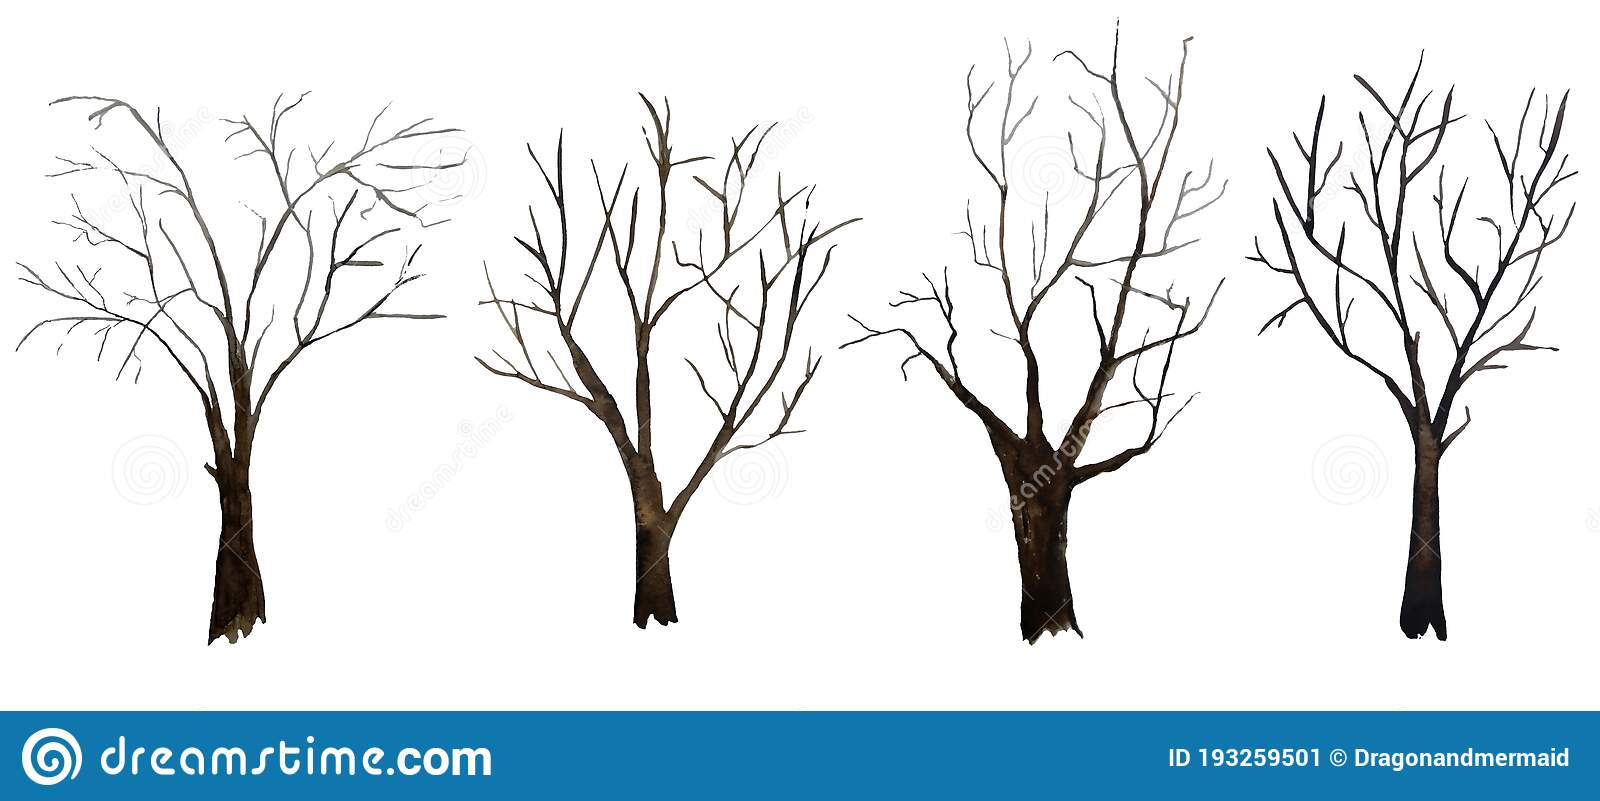 Tree No Leaves Drawing Stock Illustrations 67 Tree No Leaves Drawing Stock Illustrations Vectors Clipart Dreamstime Cartoon tree roots cartoon tree frog green cartoon tree cartoon tree with no leaves cartoon trees with branches only drawn cartoon trees white. dreamstime com